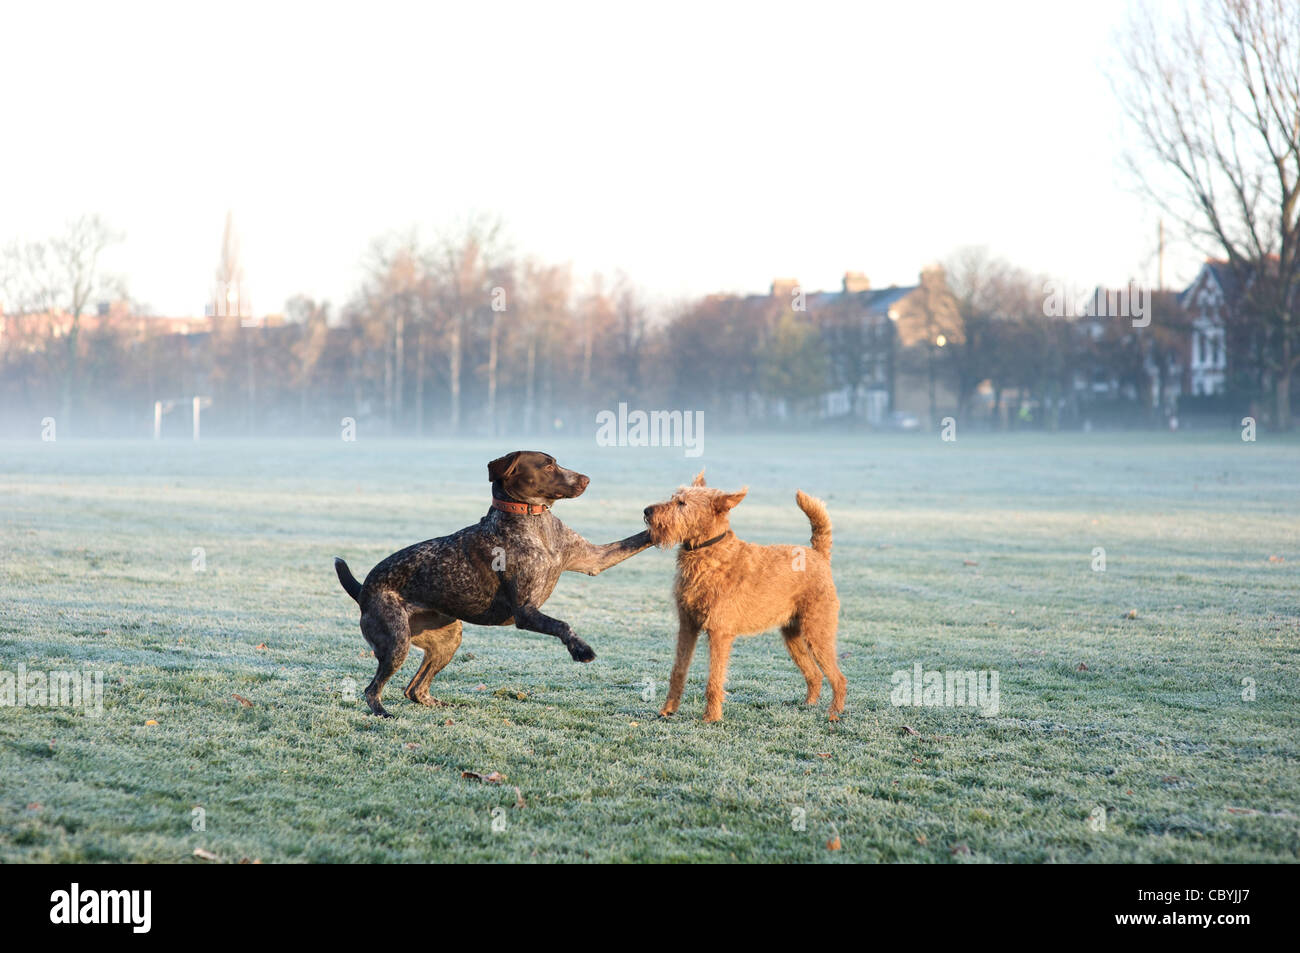 German Short Haired Pointer Stock Photos & German Short Haired ...